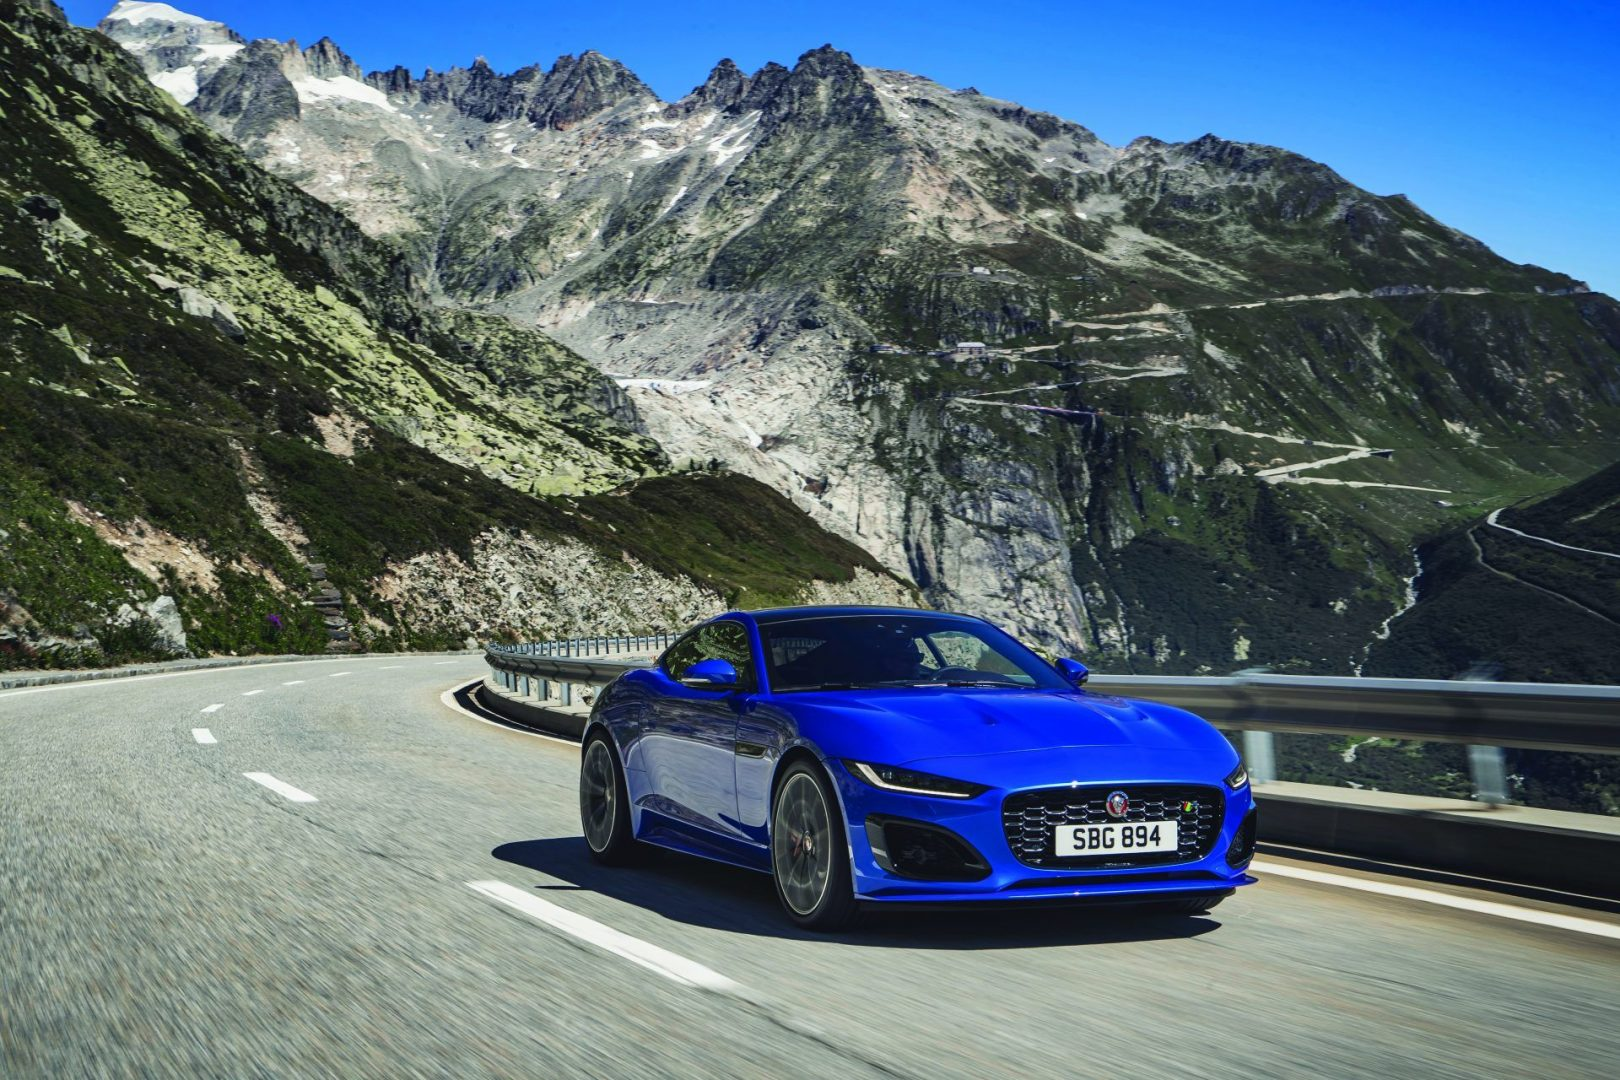 Jag-F-TYPE-R-21MY-Velocity-Blue-Reveal-Switzerland-02.12.19-06